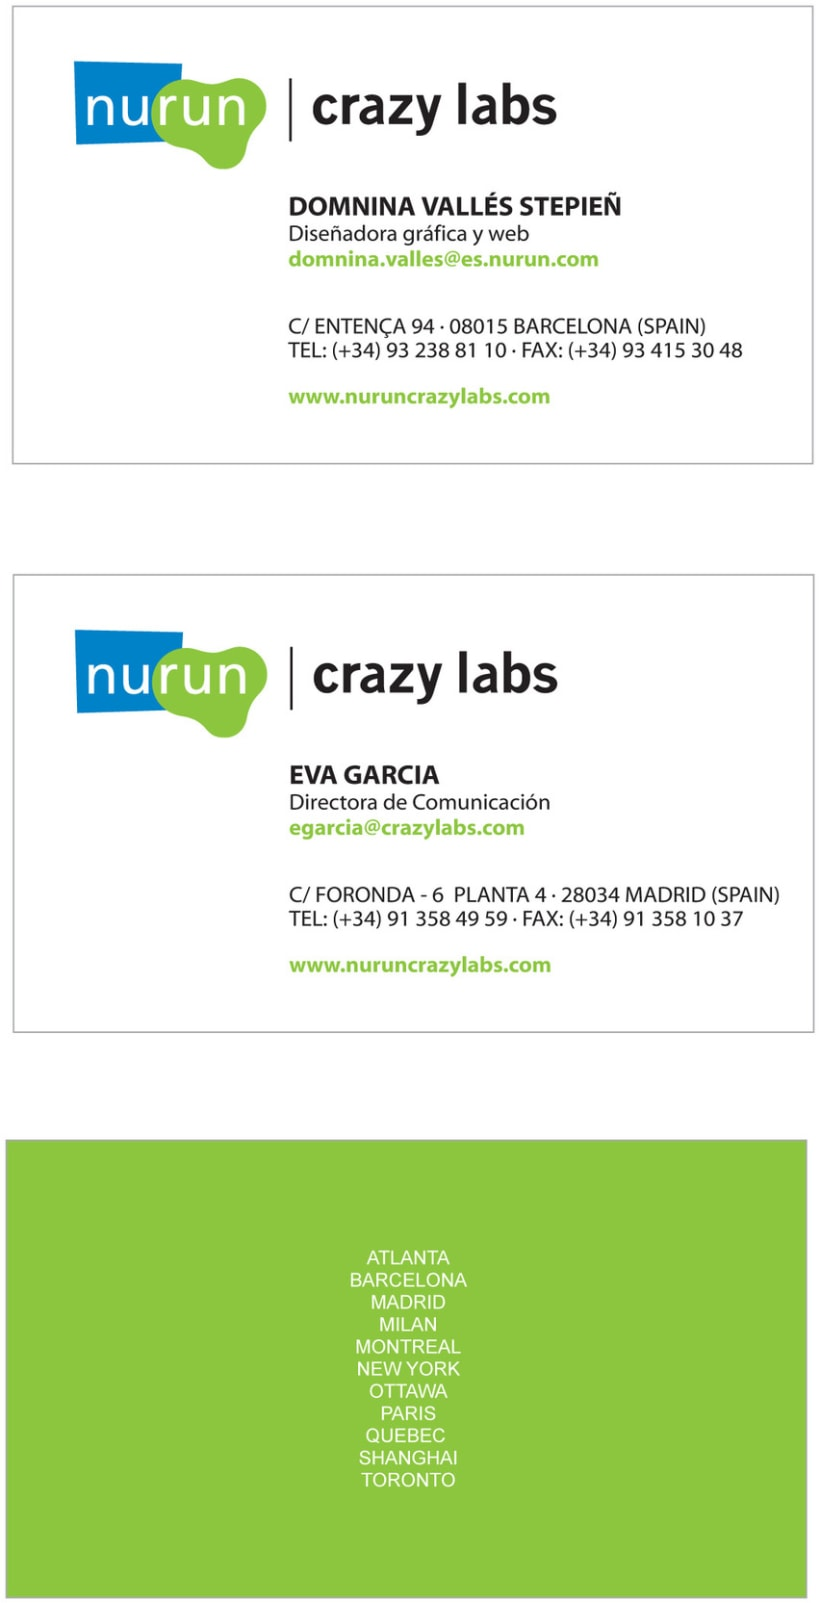 Business Card - Nurun and Crazy Labs 1